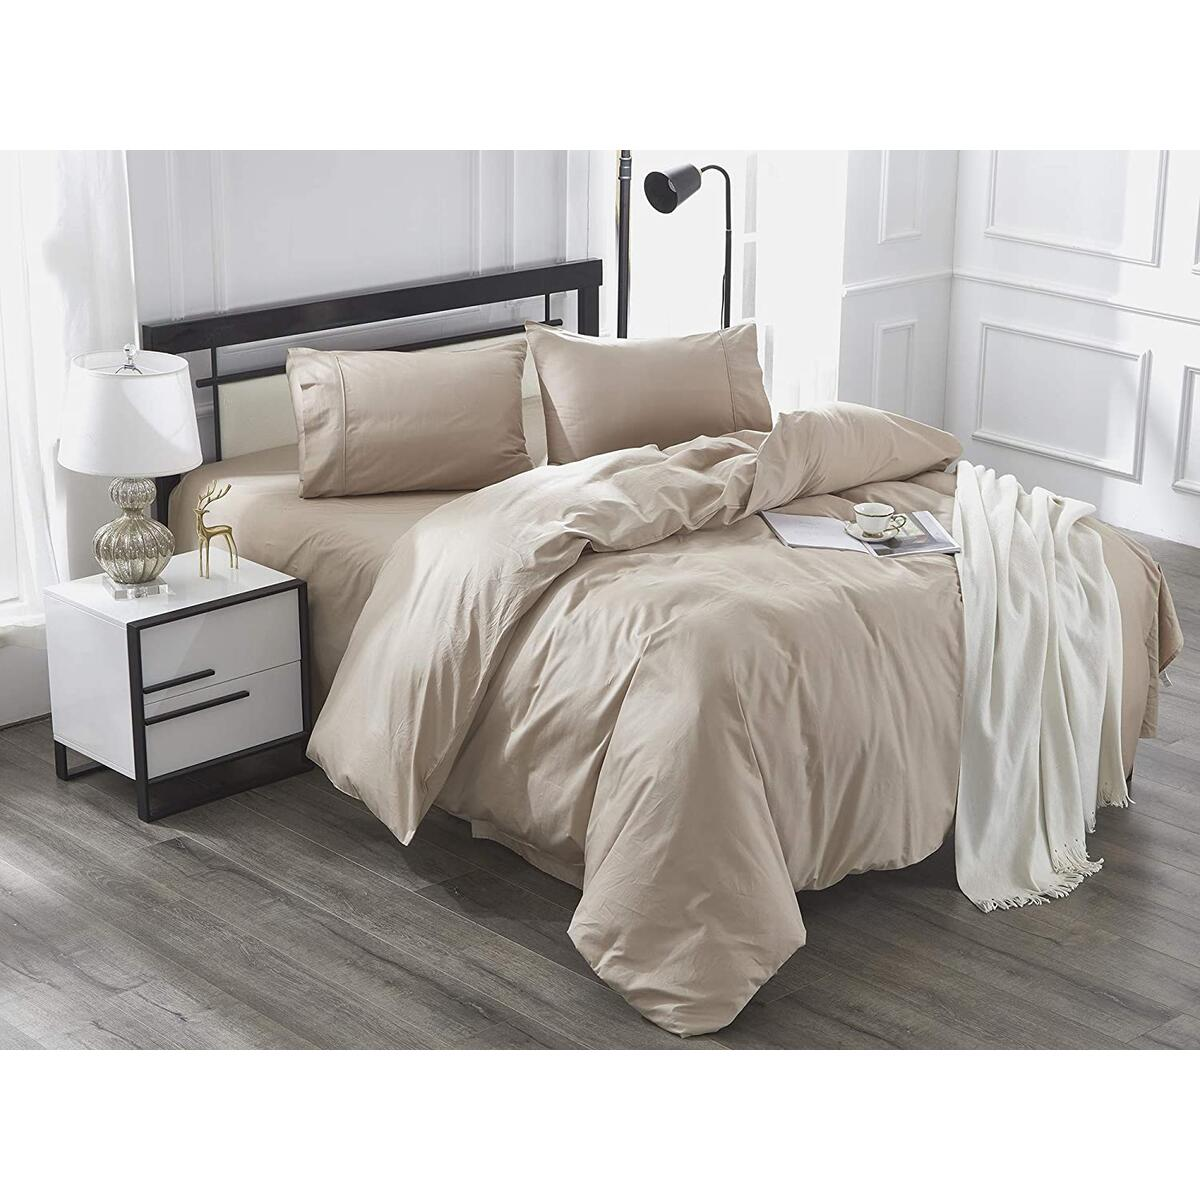 IBAMA 100% Cotton Duvet Cover Set Including Pillowcases For Queen Size Bed In Bedroom Kid's Room Guest Room